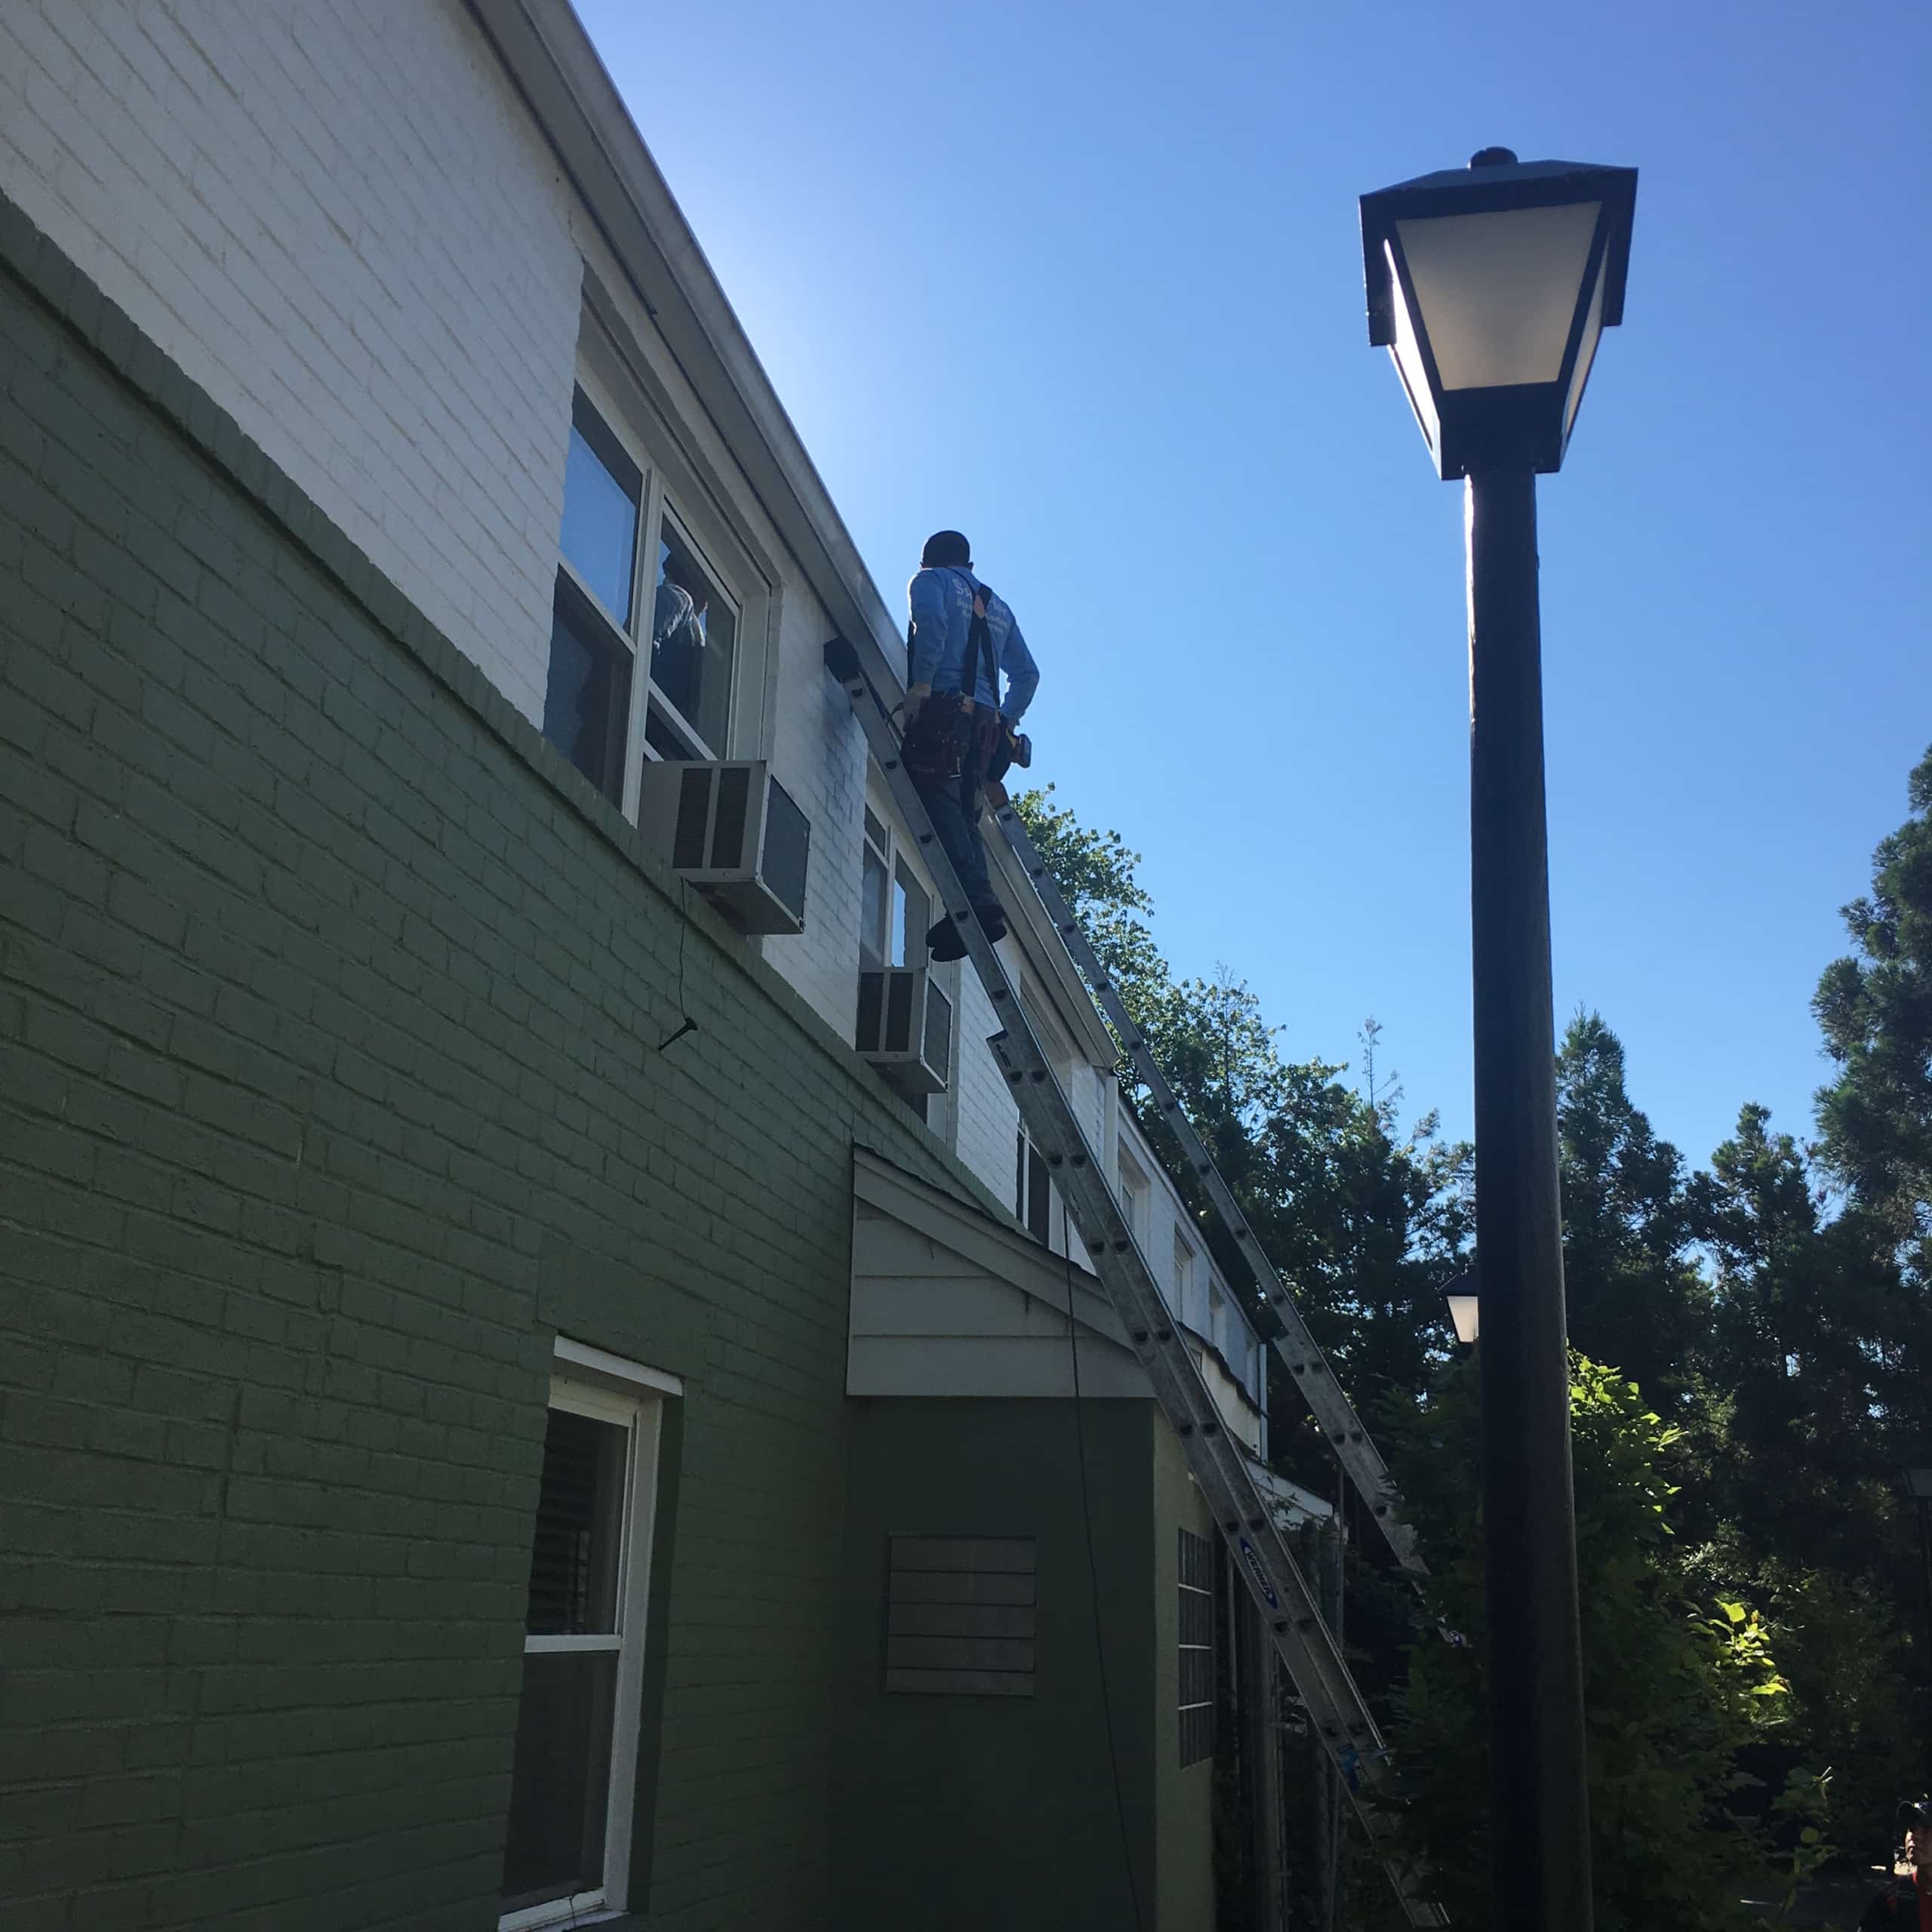 Gutter Installation for Apartment Complex in Teaneck NJ by Superior Seamless Gutters